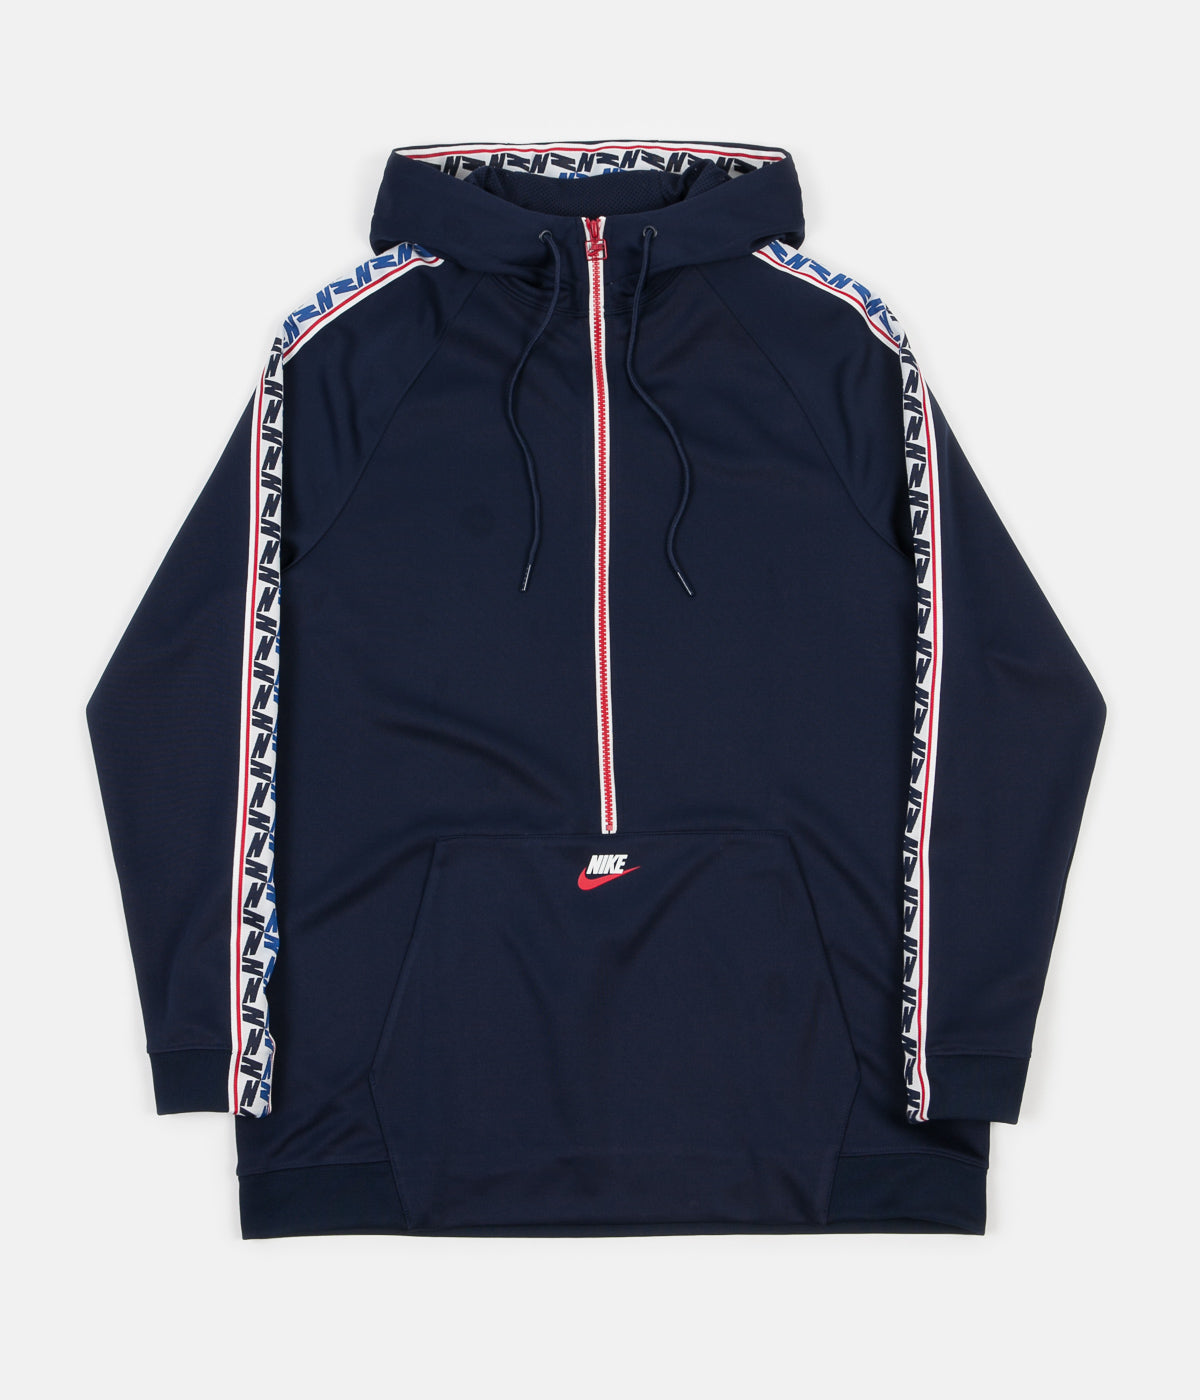 0893e9eef7 ... Nike Taped Half Zip Poly Hoodie - Obsidian   Gym Red   Sail ...